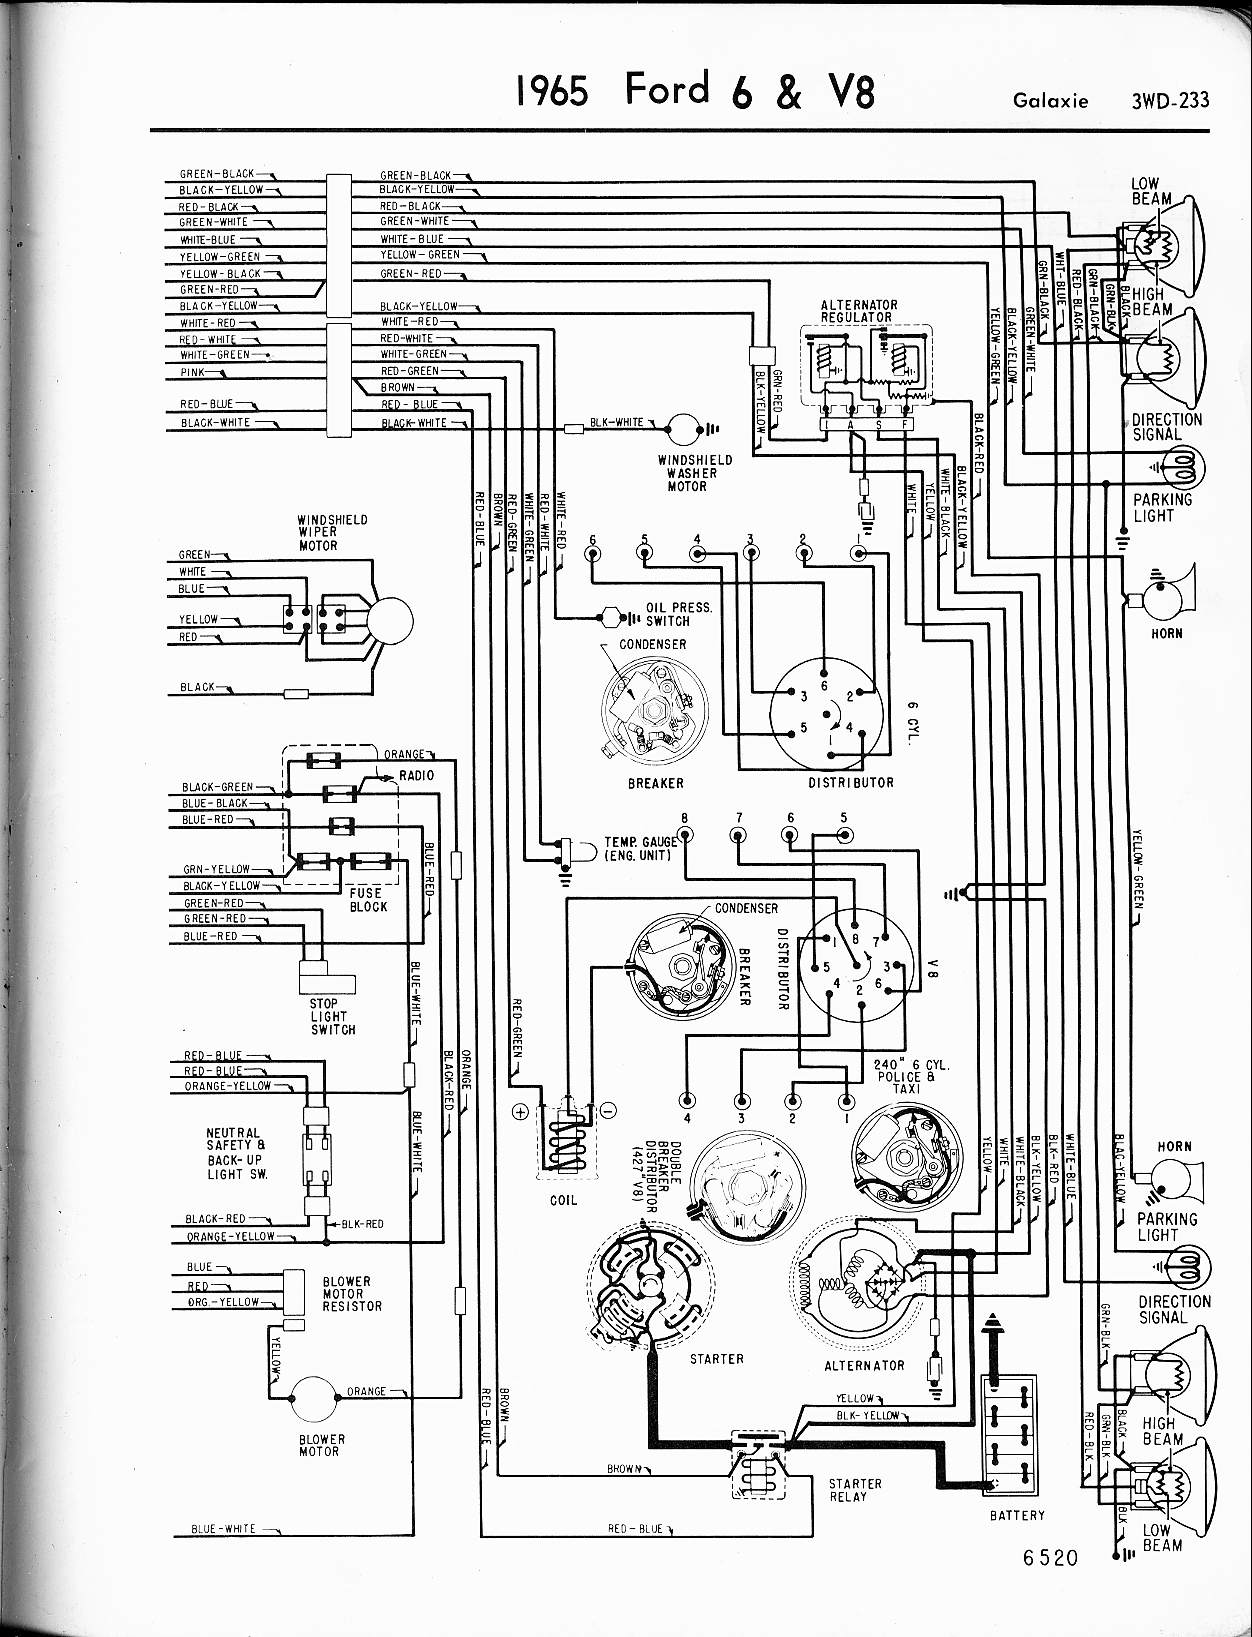 1977 ford ltd radio wiring diagram